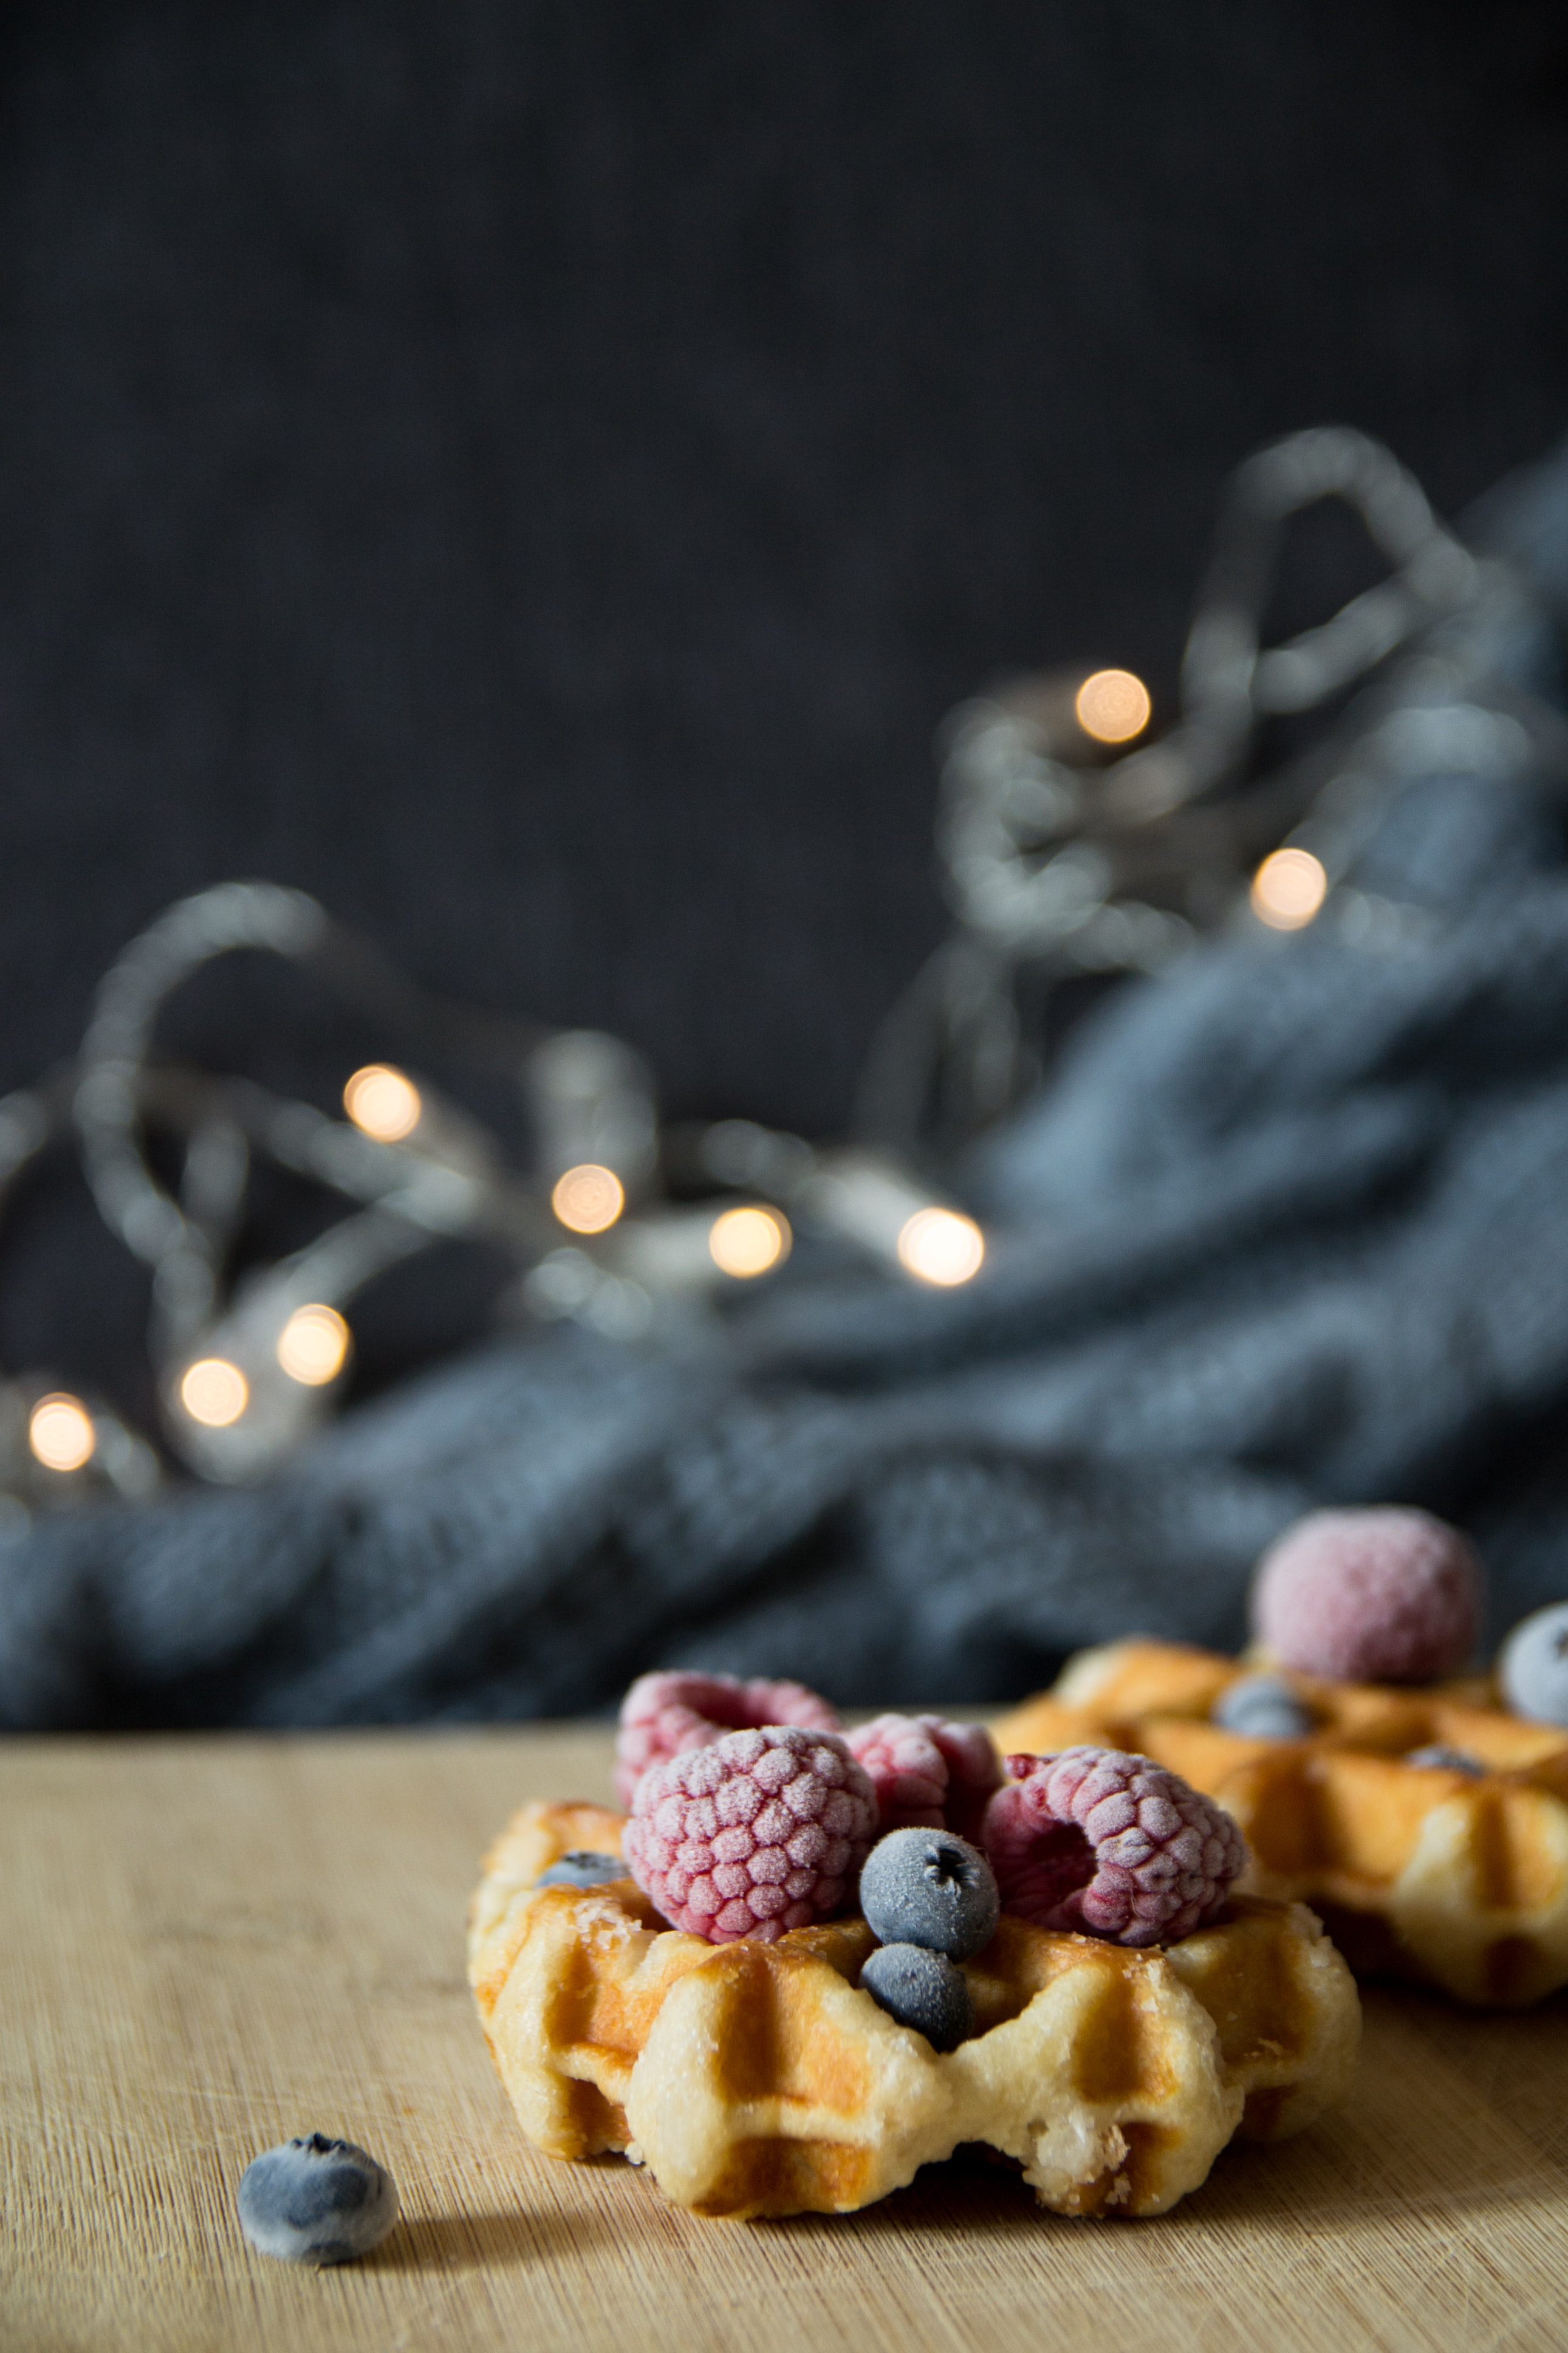 cookies with blueberries and raspberries